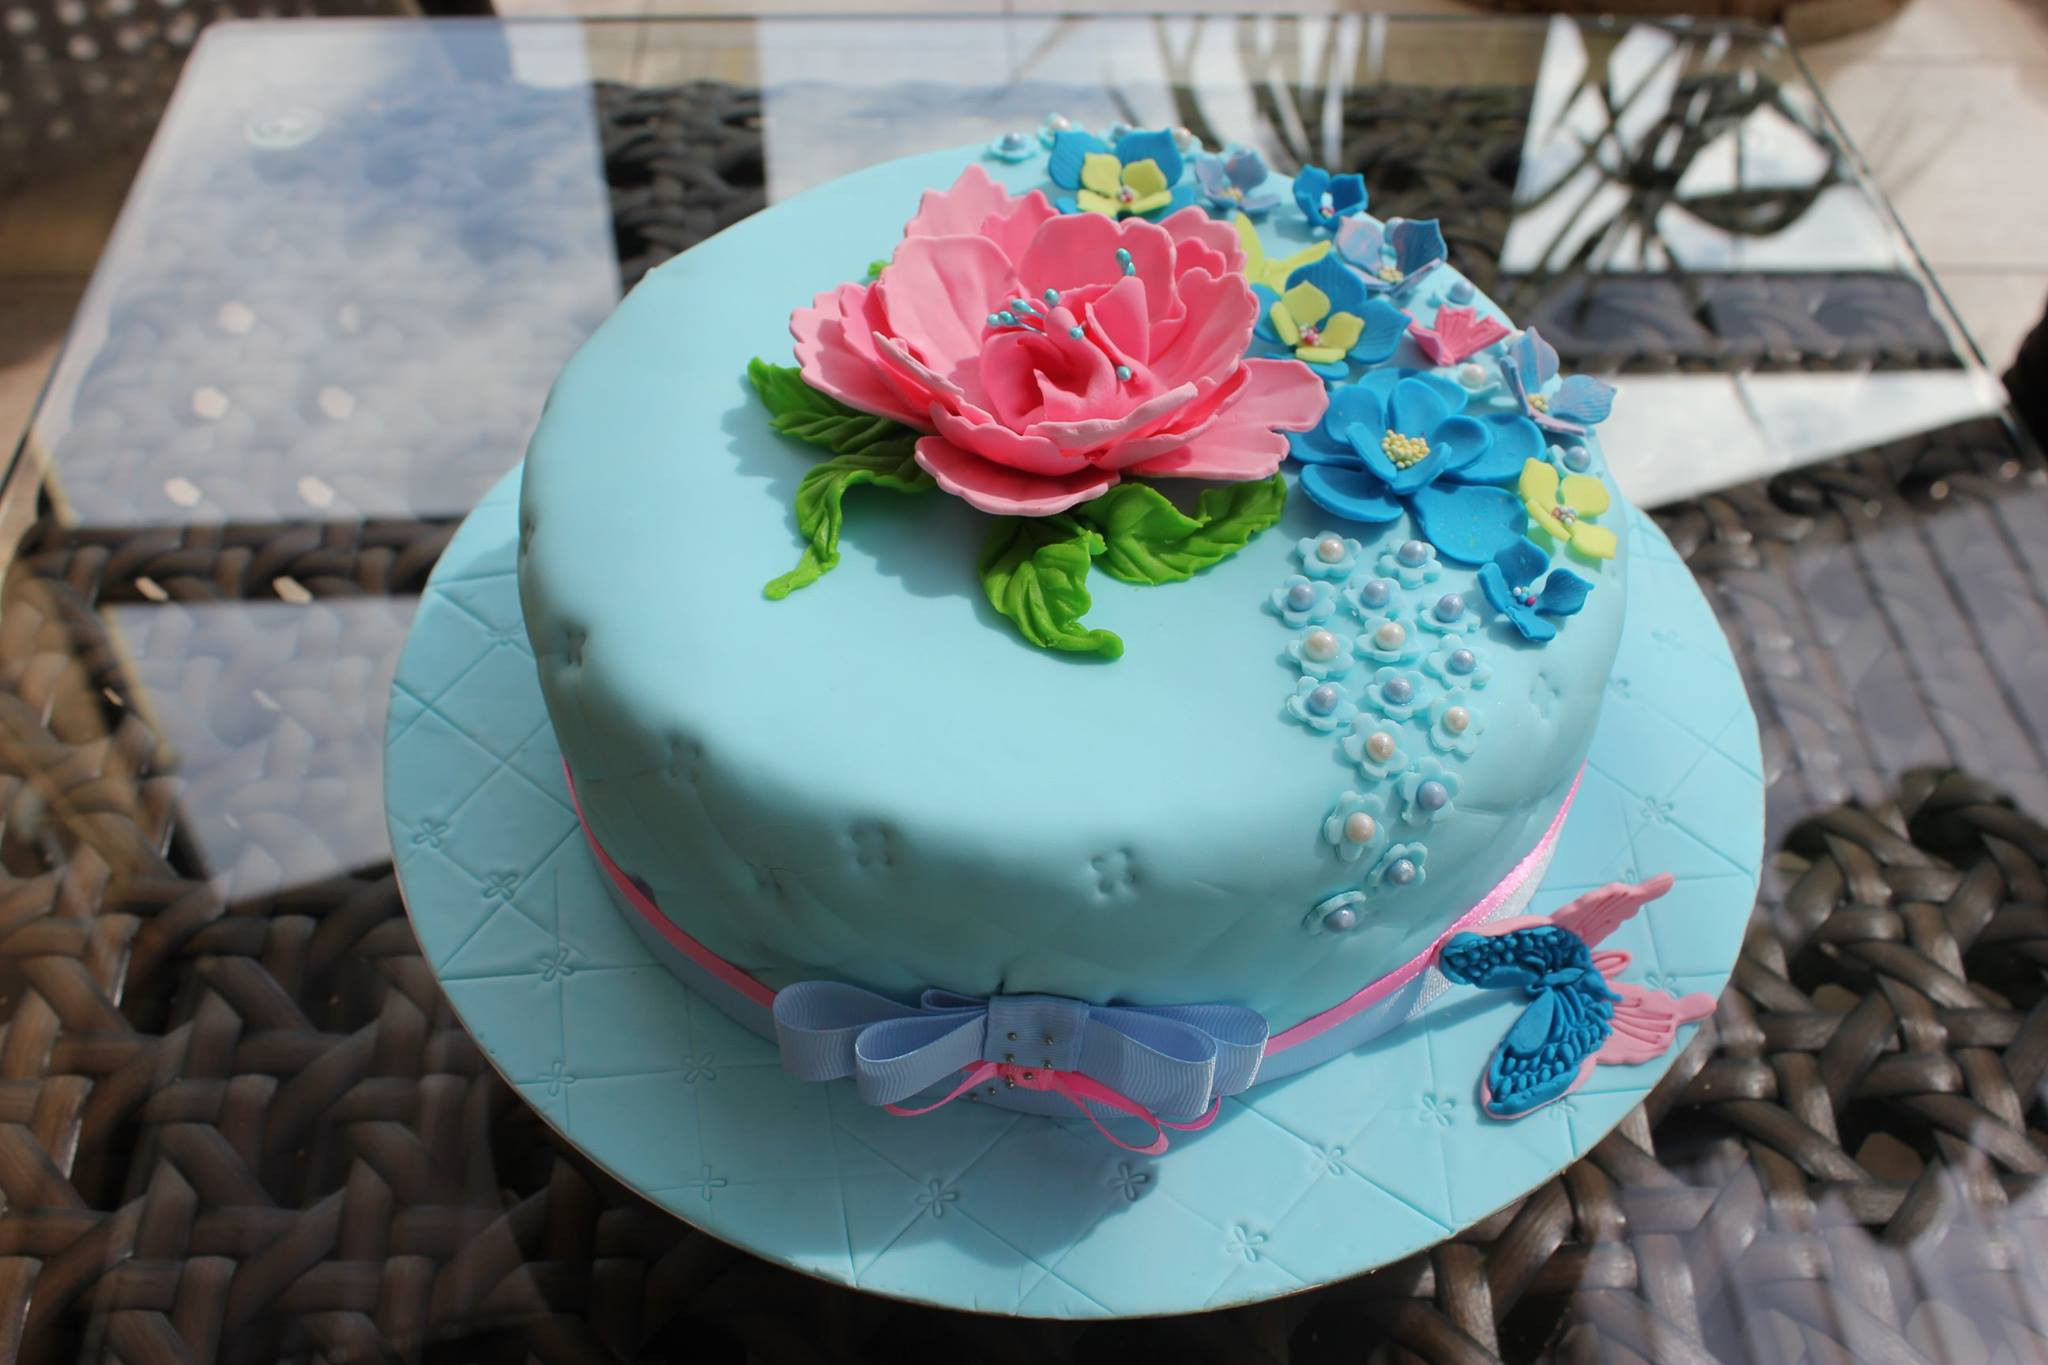 Best ideas about Blue Birthday Cake . Save or Pin Blue Birthday Cake Now.